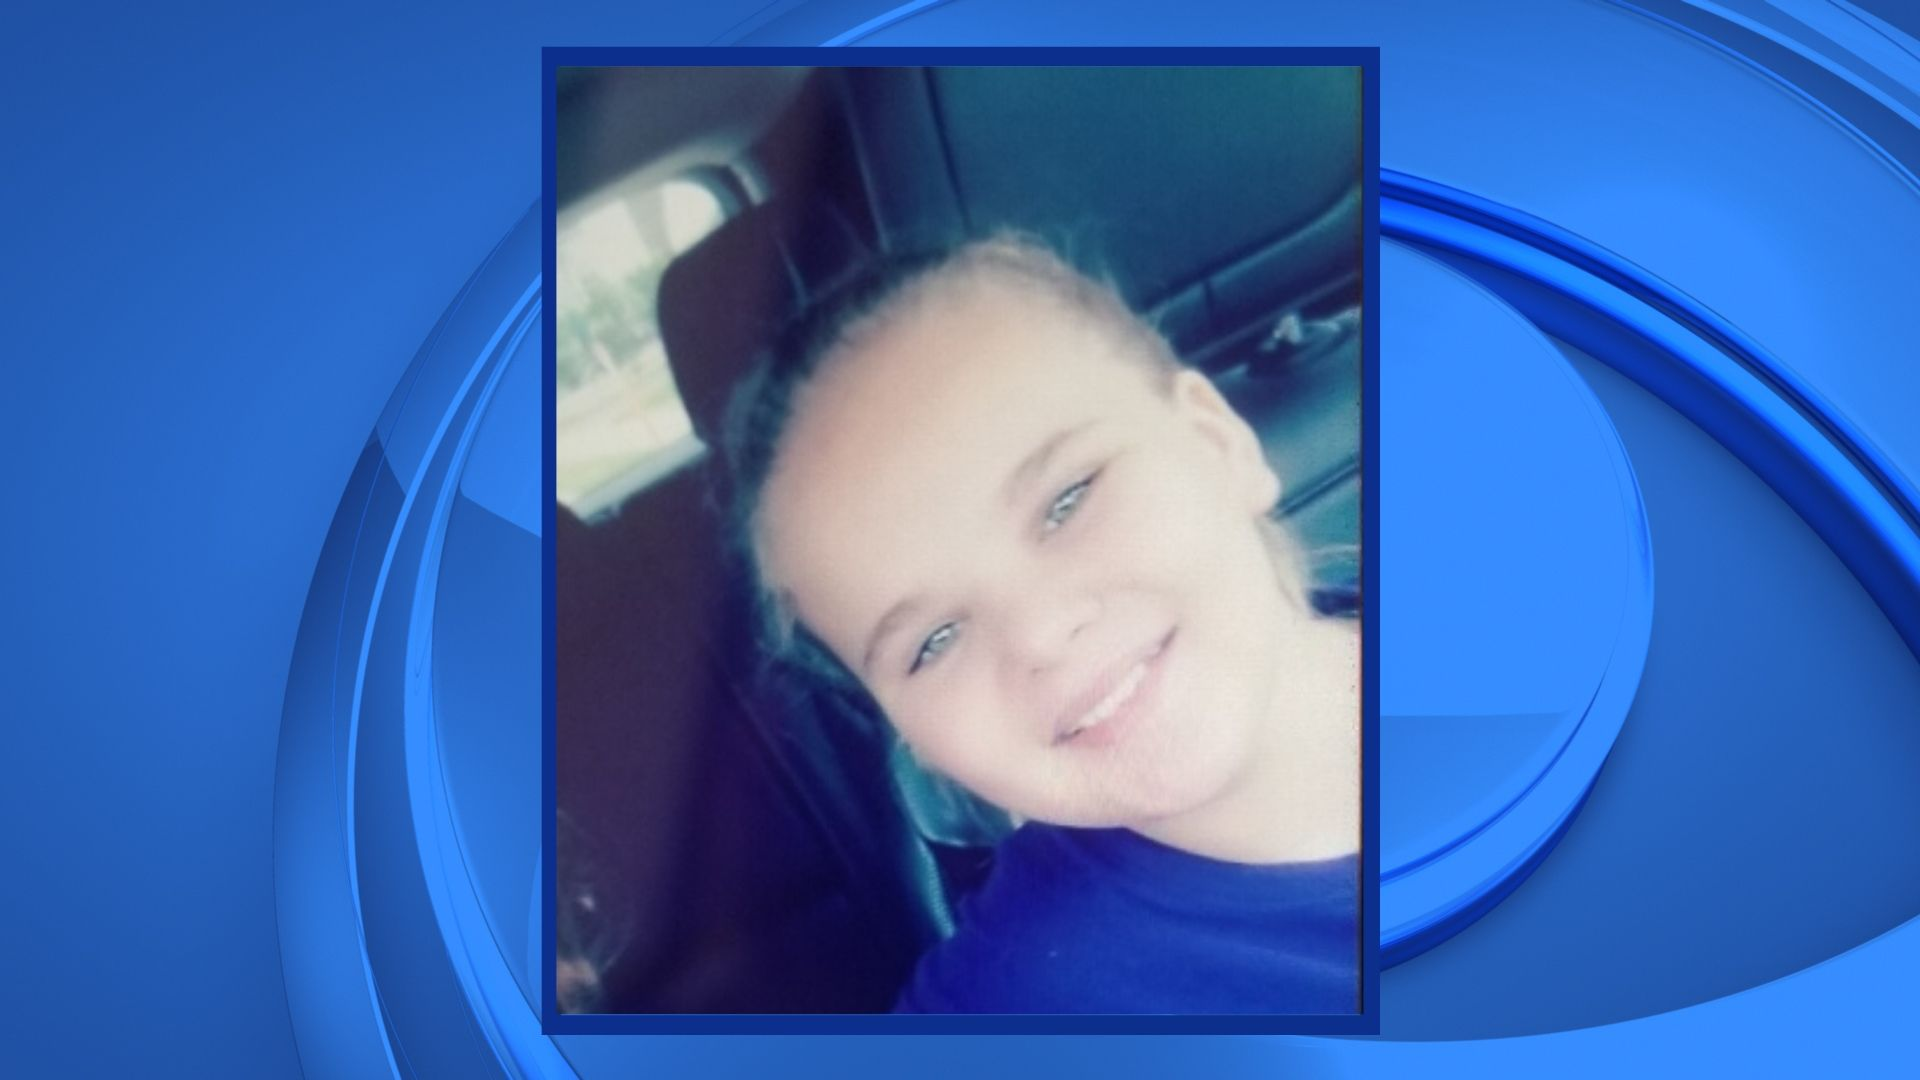 Update Preliminary Autopsy Shows Girl From Baraboo Amber Alert Likely Died By Suicide Wfrv Local 5 Green Bay Appleton